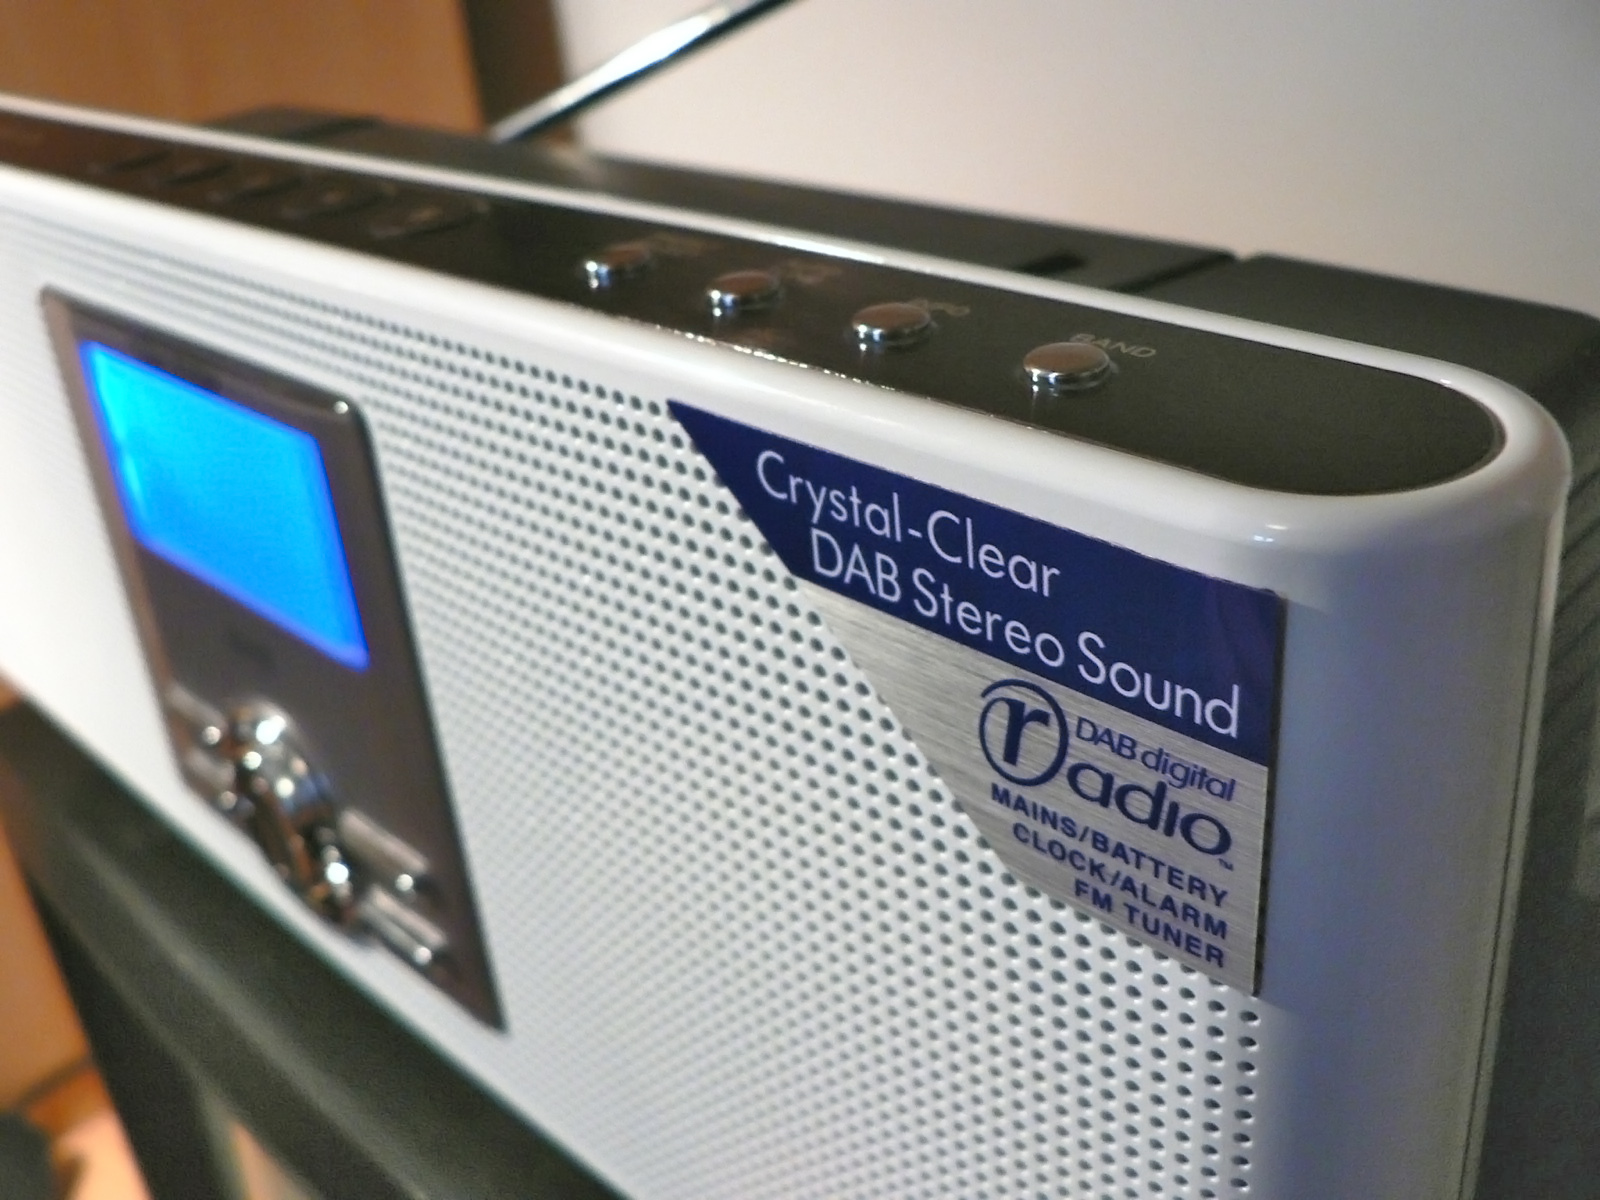 Popular Glasgow community radio station in hot water over on-air obscenities